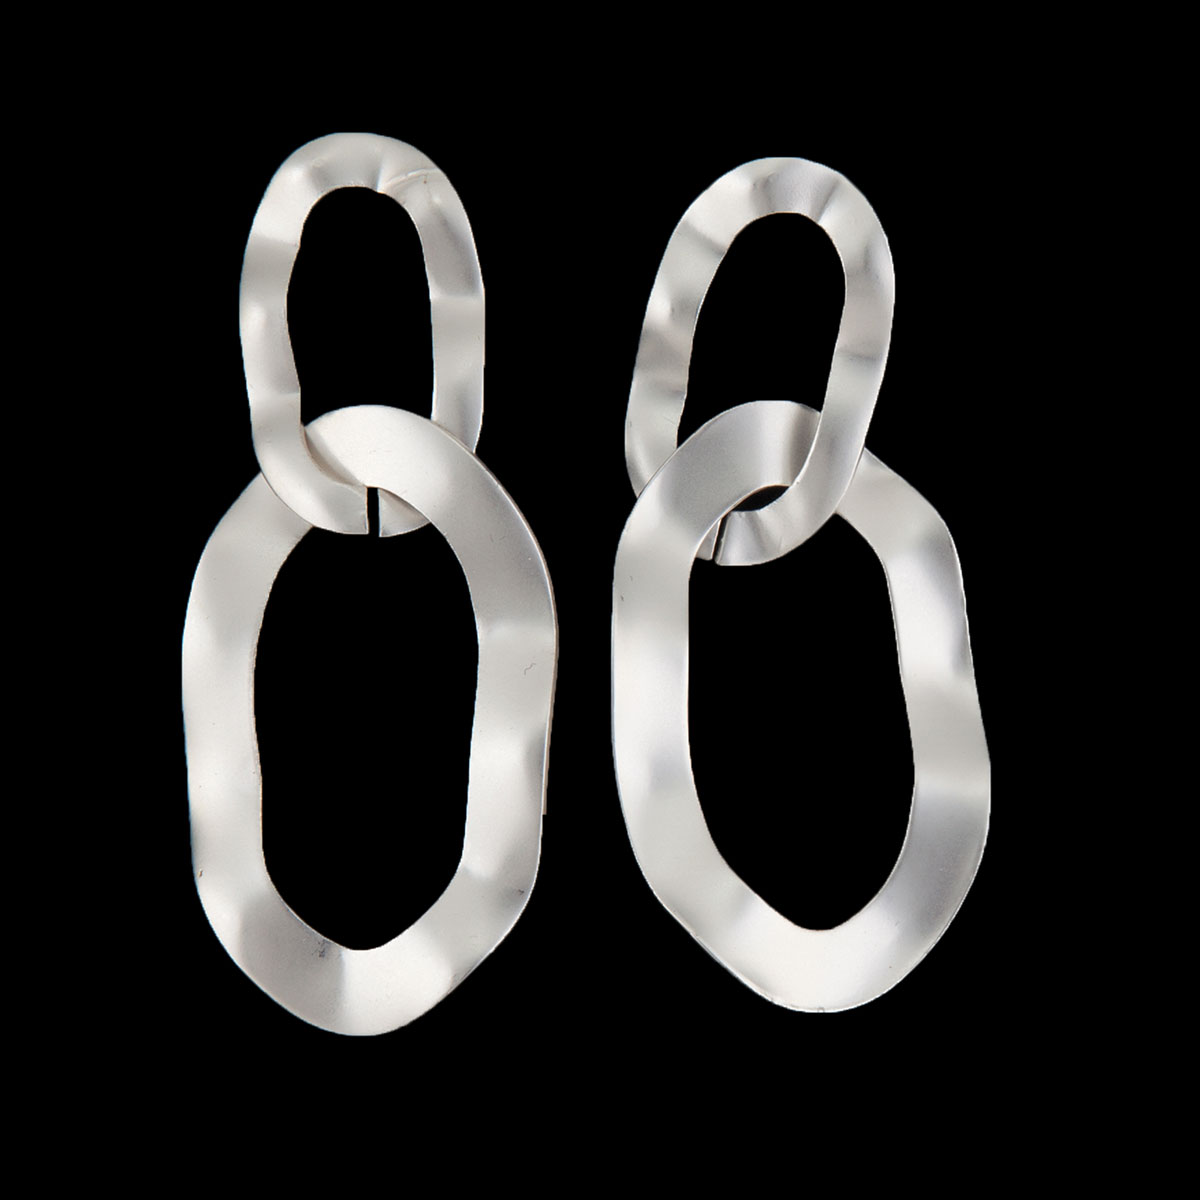 Matte Silver Double Oval Post Earrings